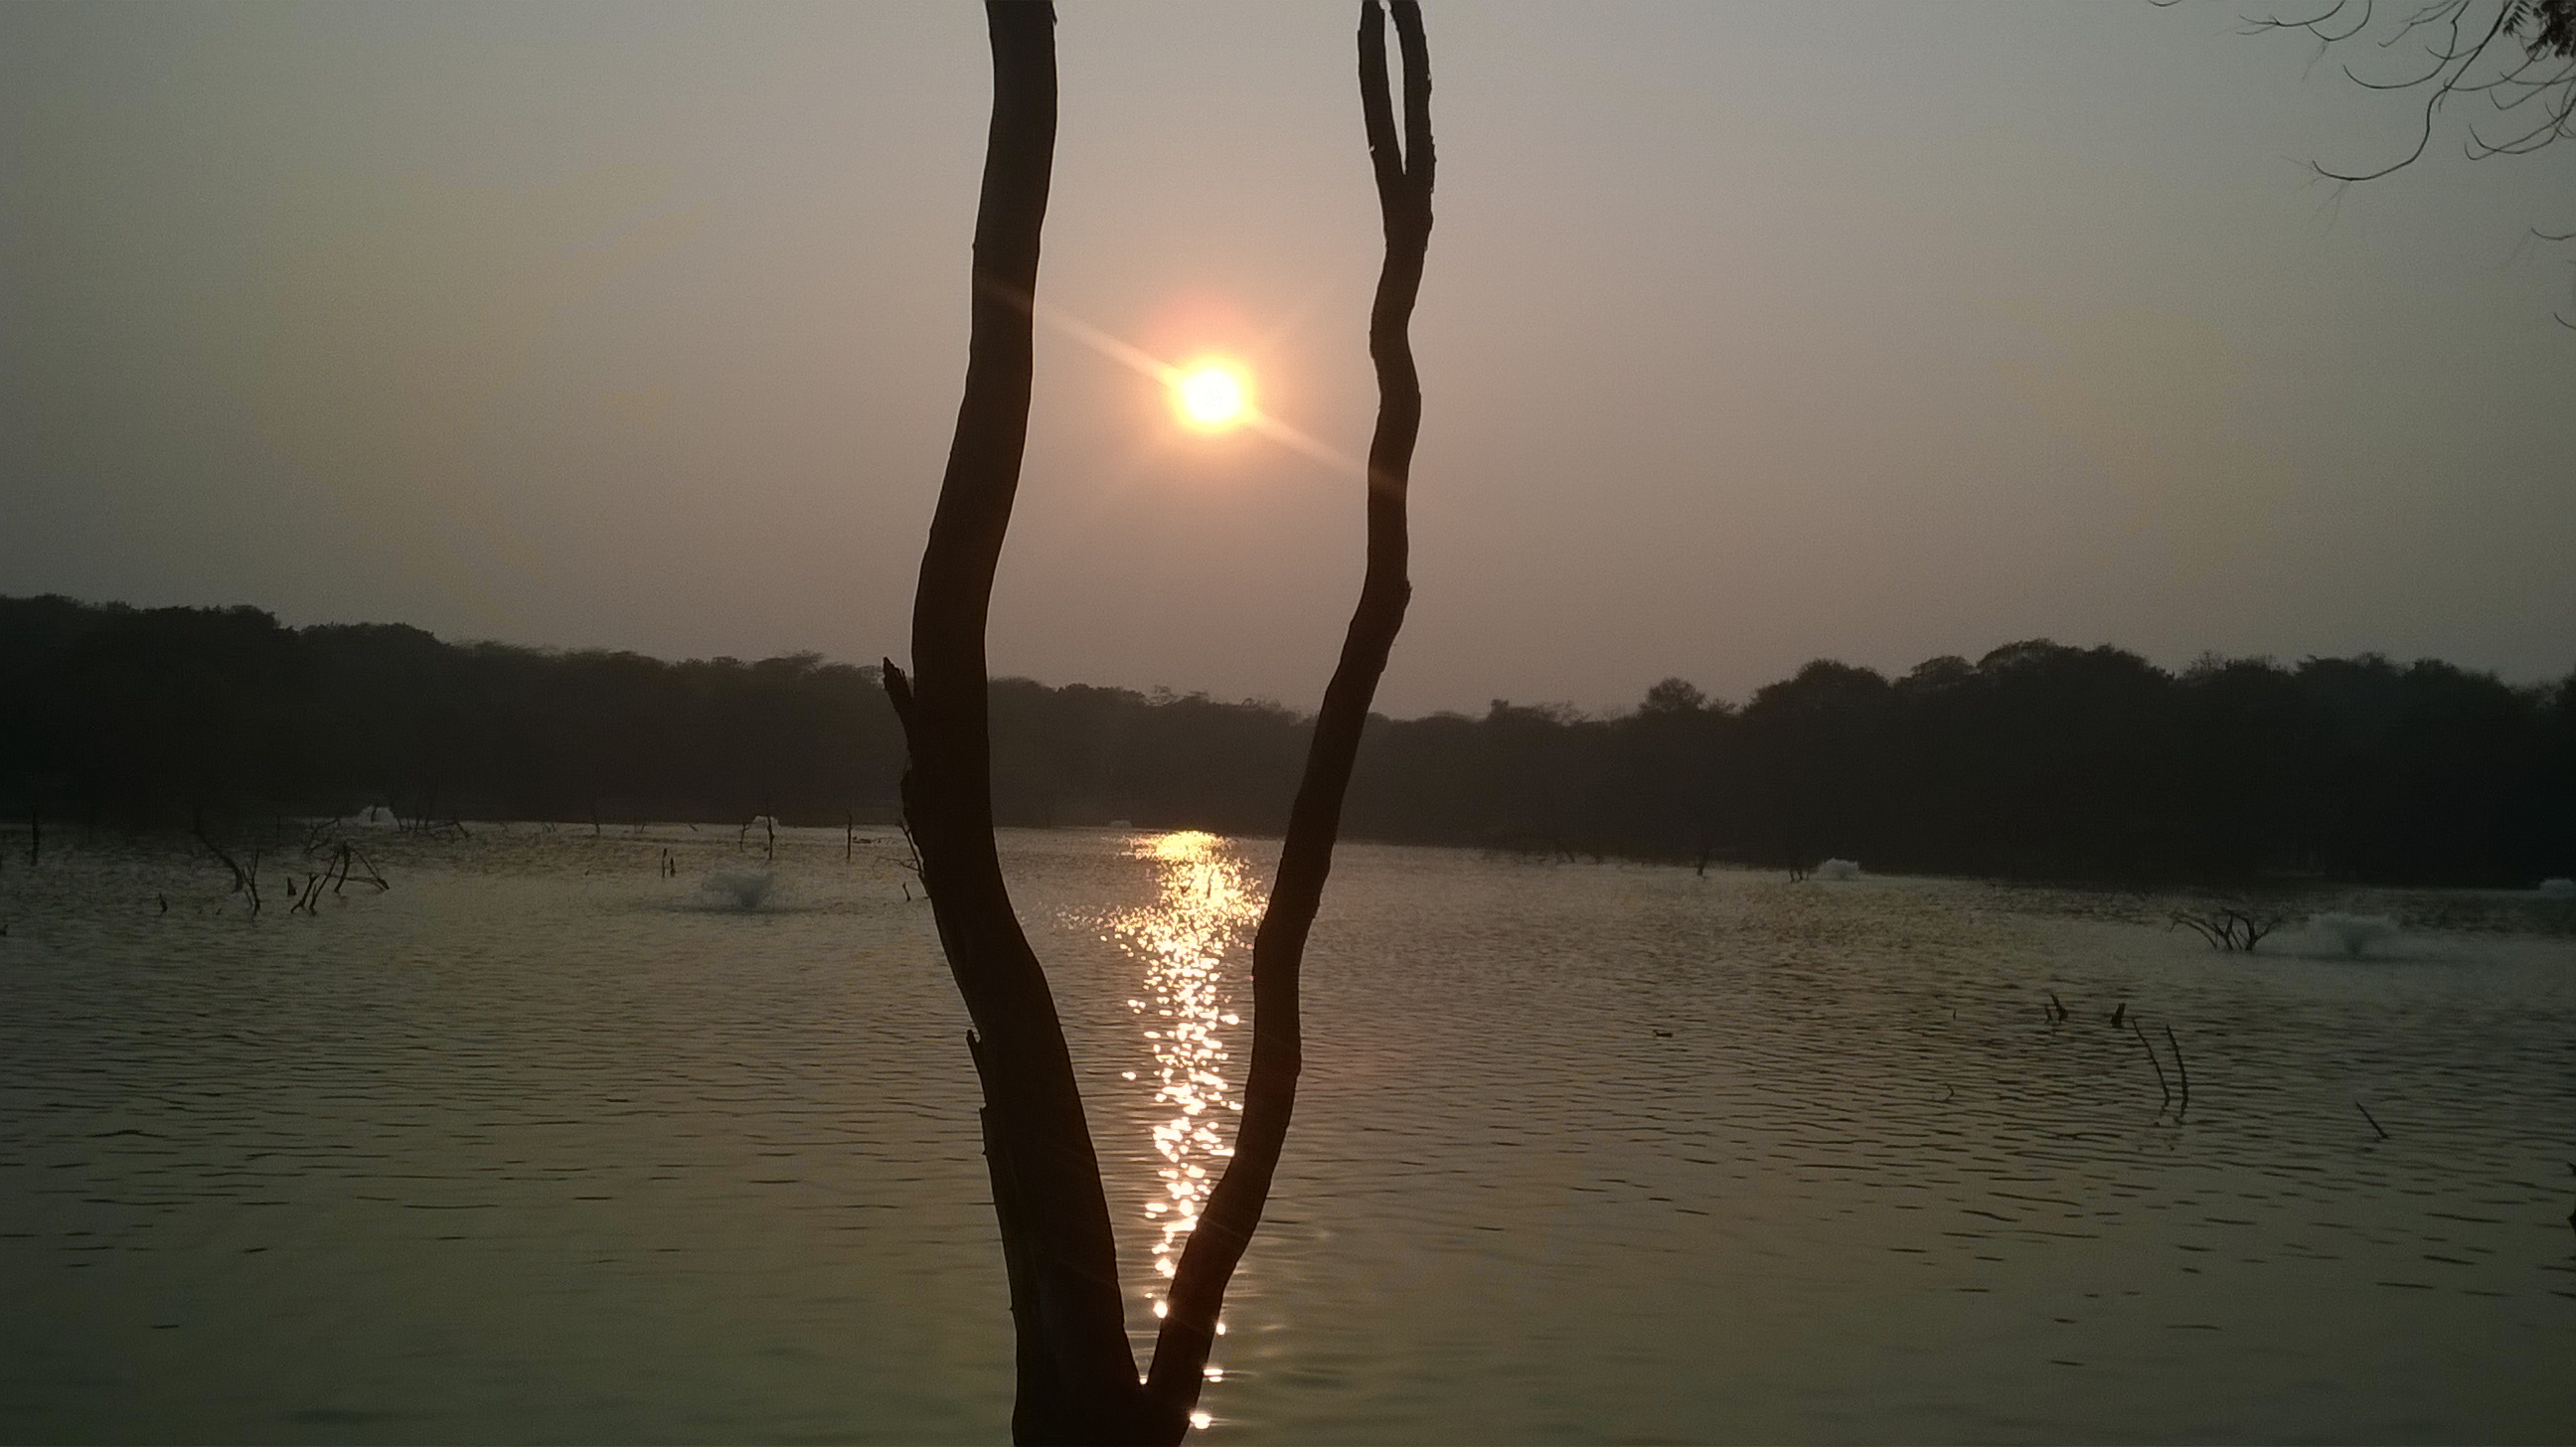 Sunset at Hauz Khas Lake